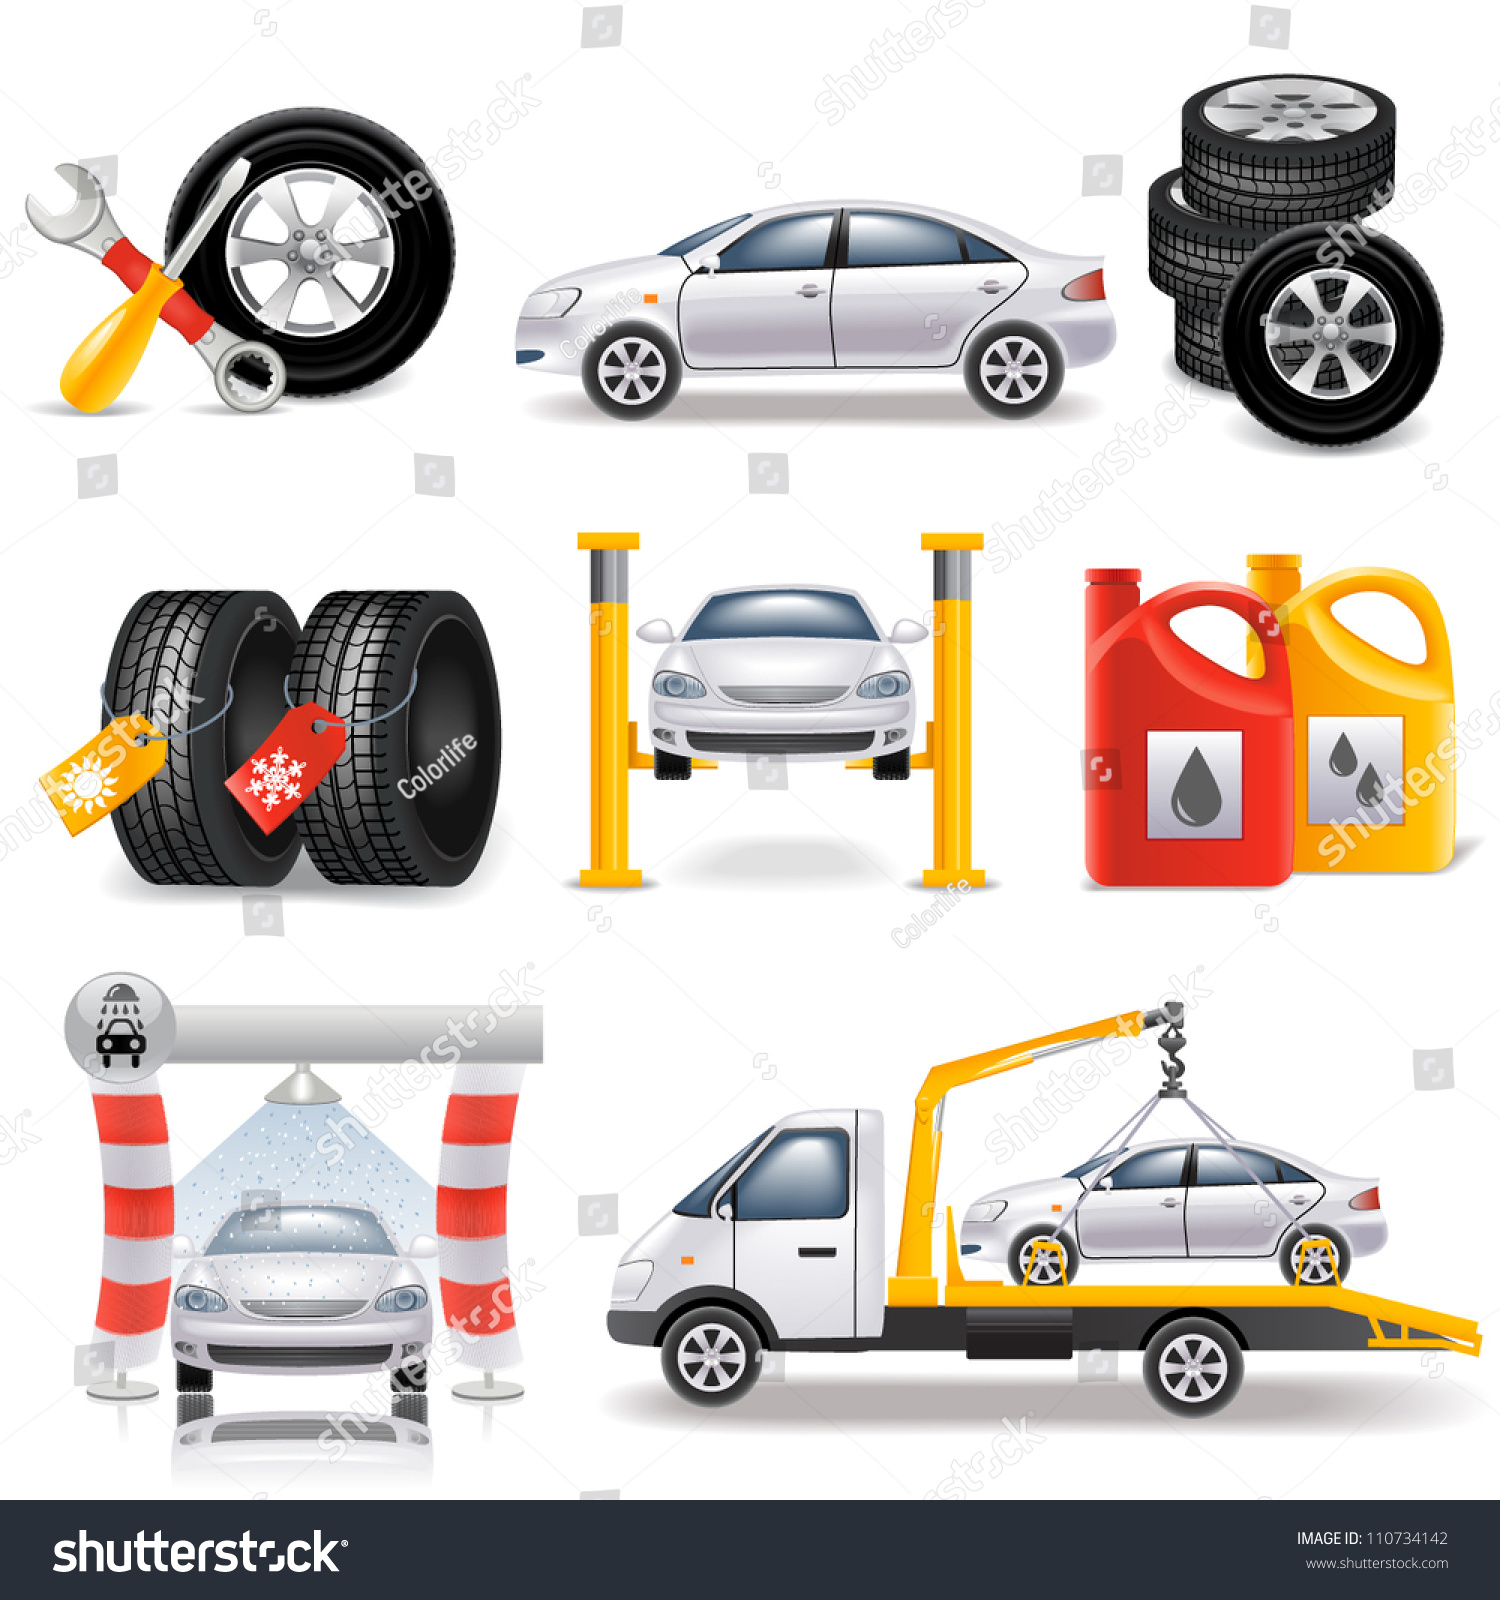 auto service set stock vector 110734142 shutterstock. Black Bedroom Furniture Sets. Home Design Ideas